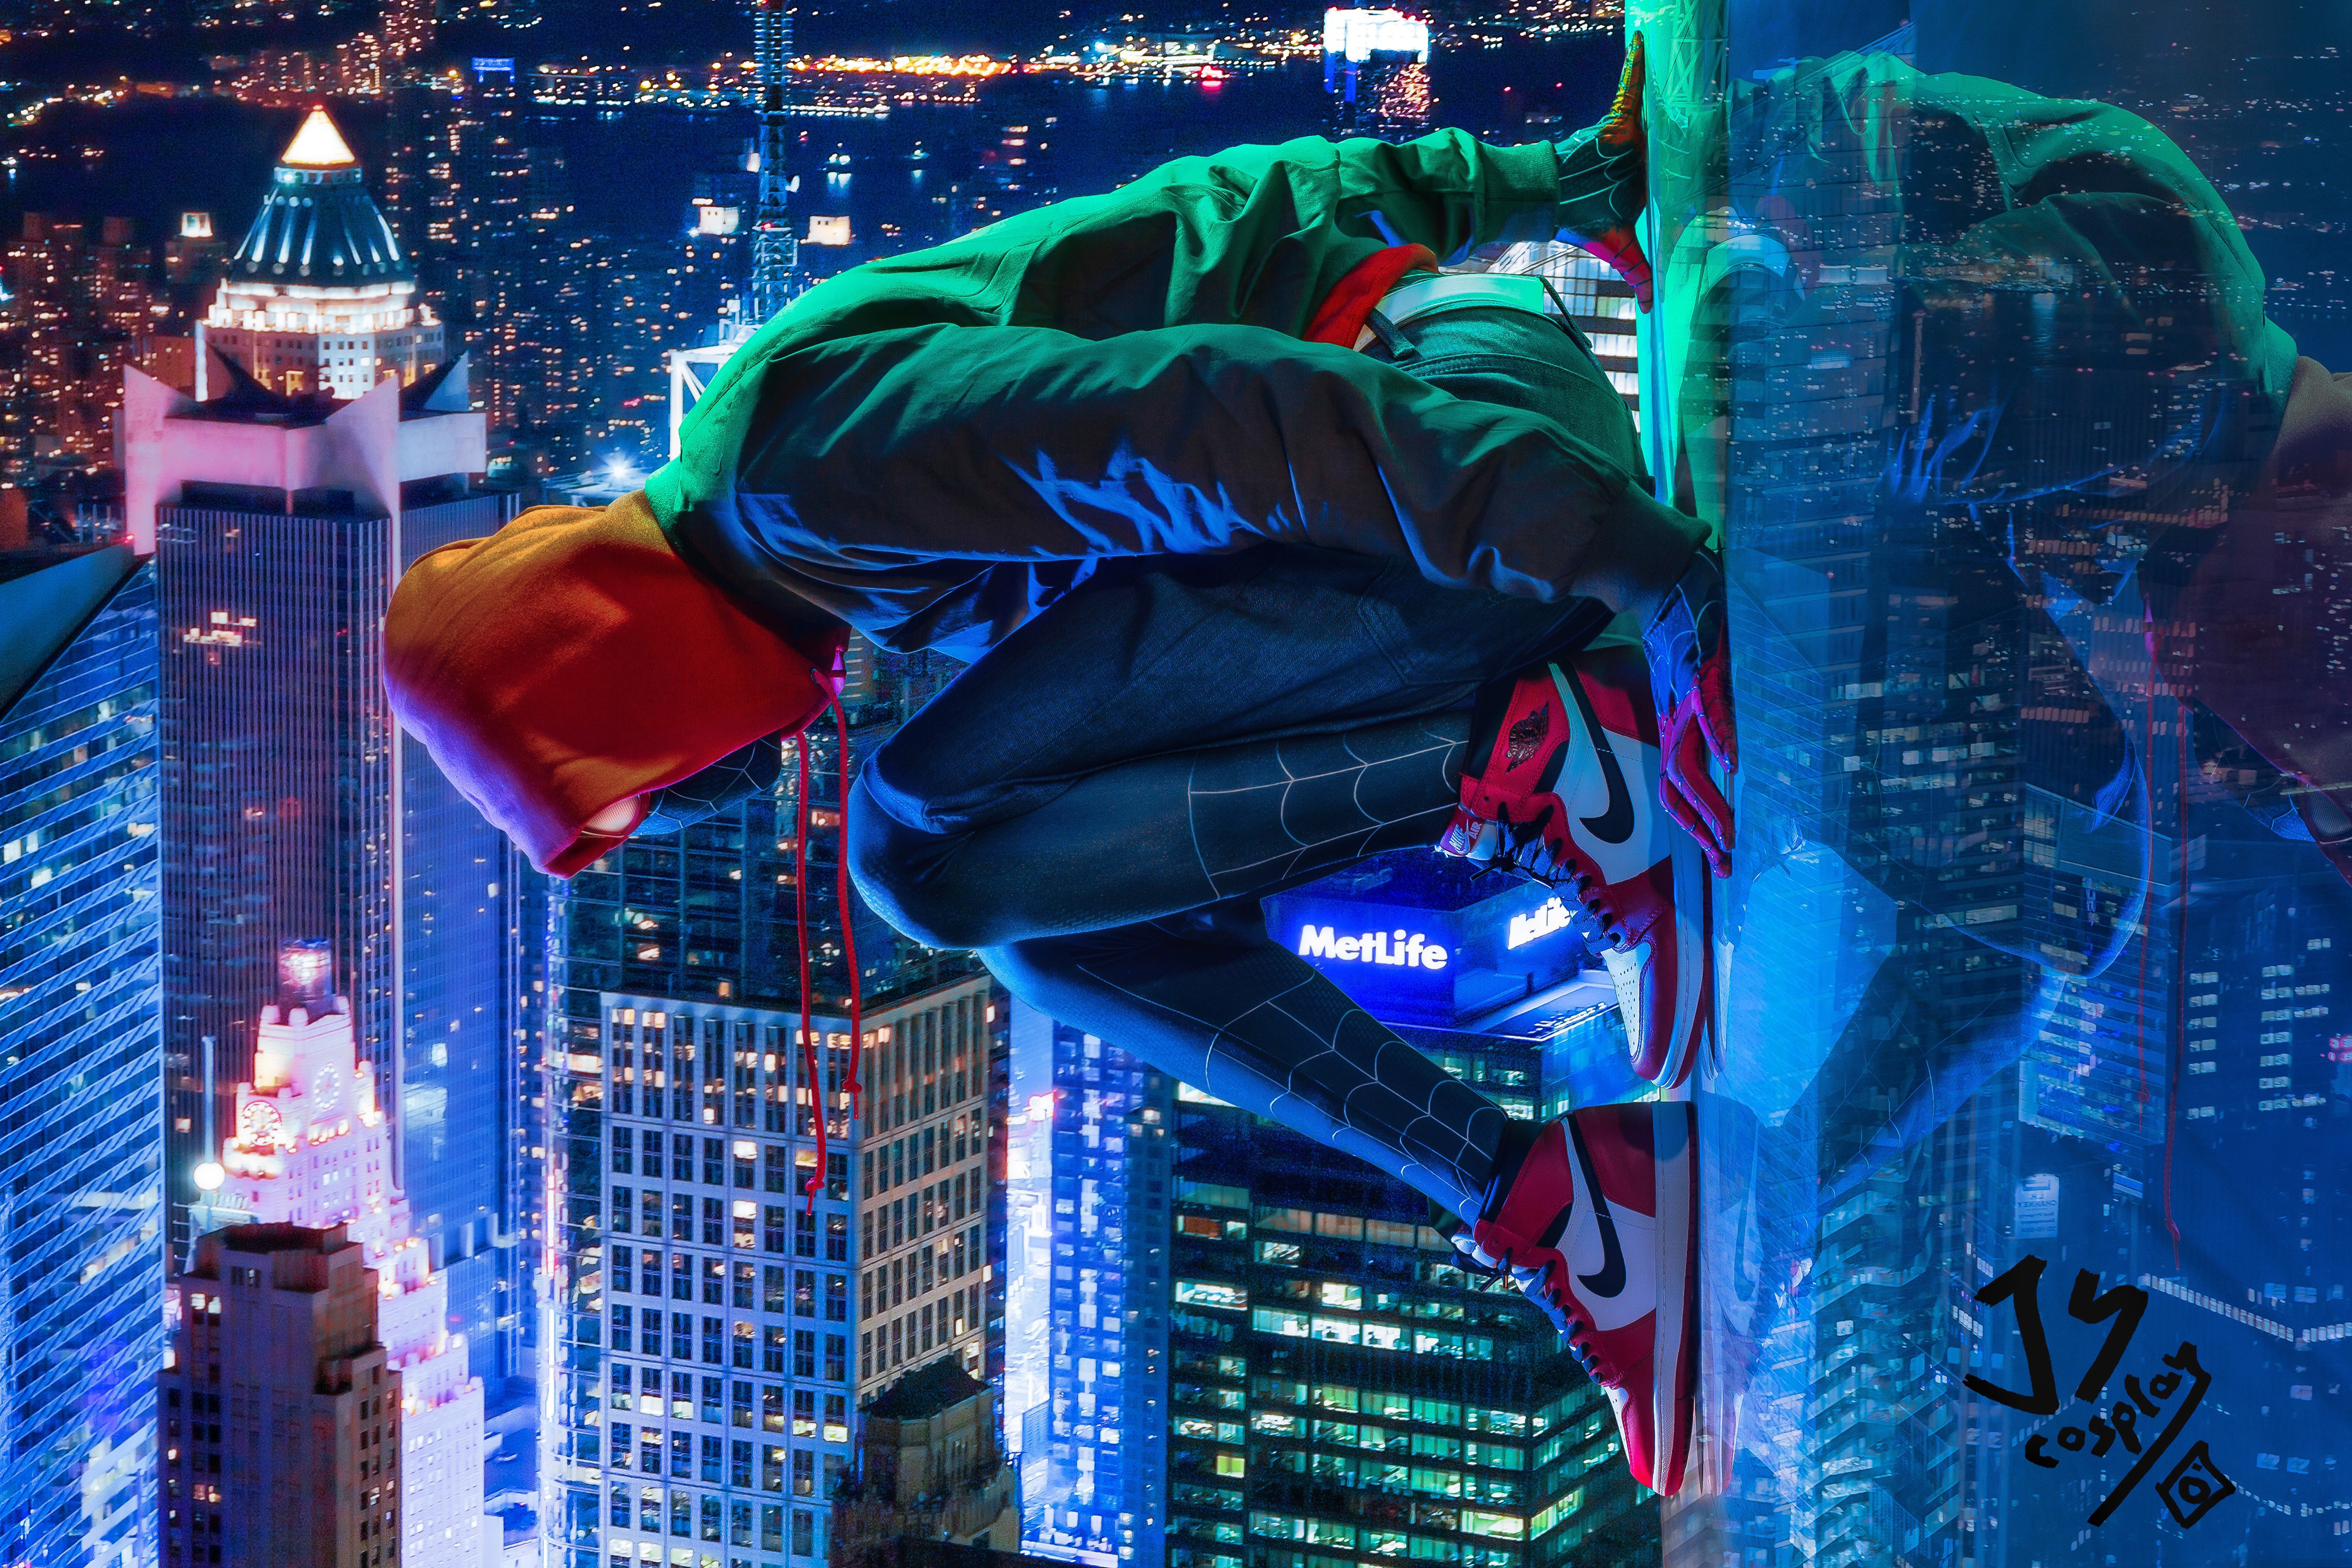 General 3840x2560 Miles Morales Marvel Comics Spider-Man: Into the Spider-Verse Spider-Man Nike hoods cityscape photo manipulation